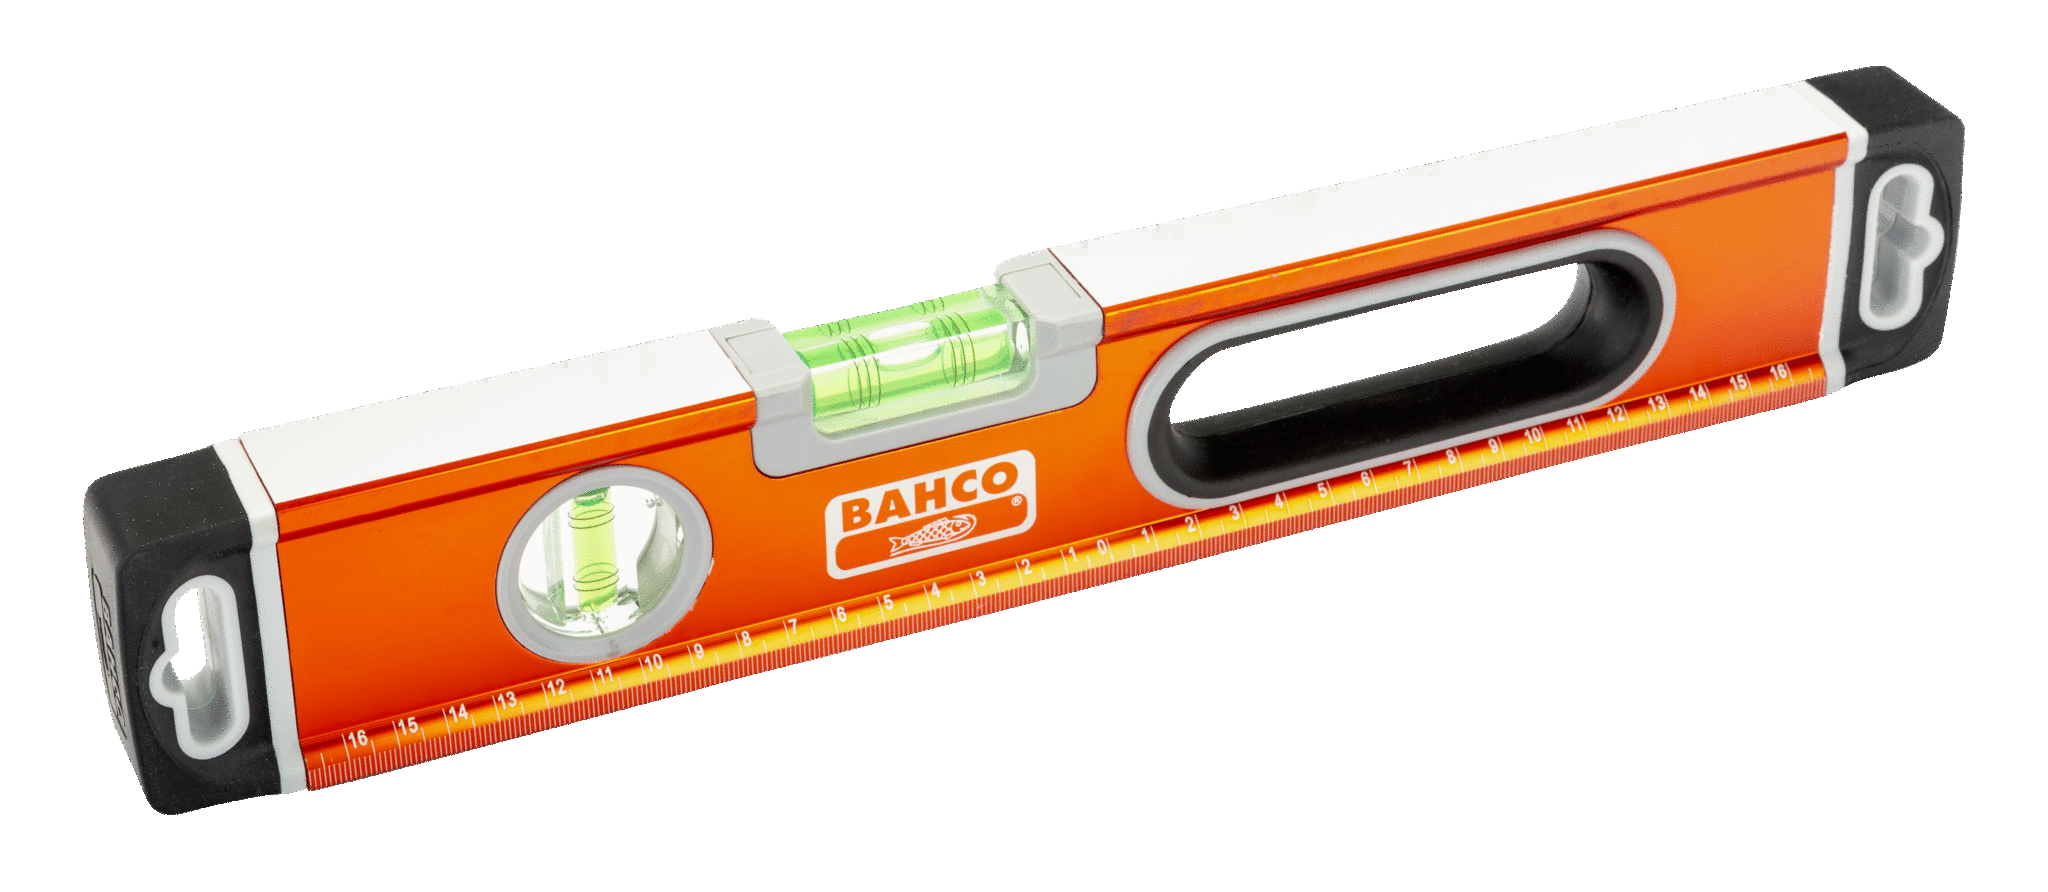 bahco-499